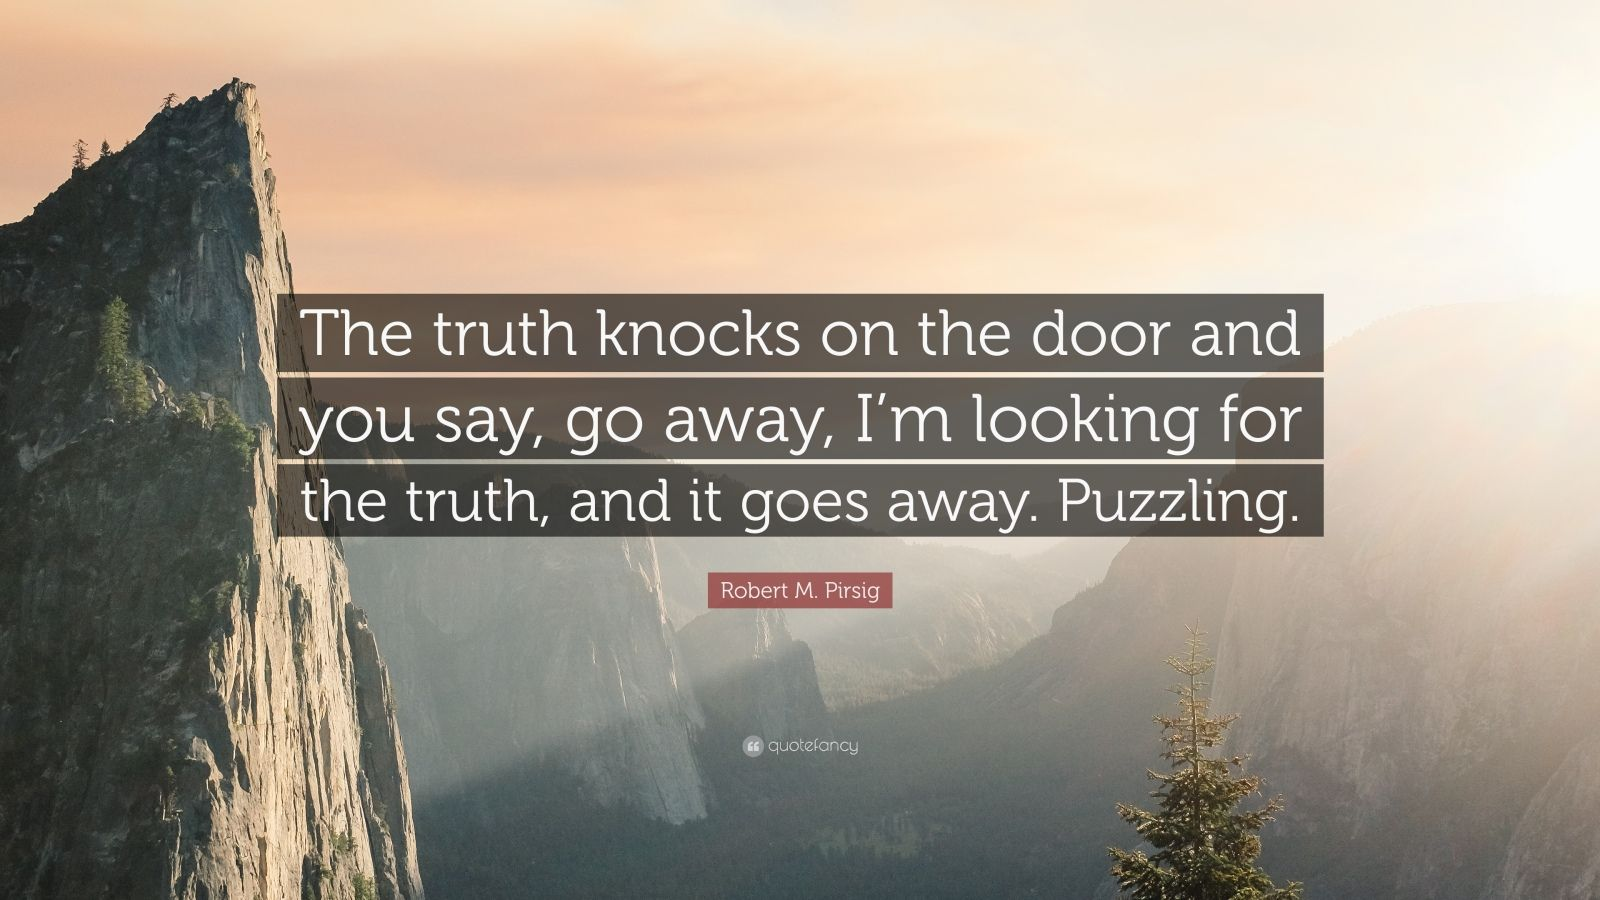 """Robert M. Pirsig Quote: """"The truth knocks on the door and you say, go away, I'm looking for the truth, and it goes away. Puzzling."""""""